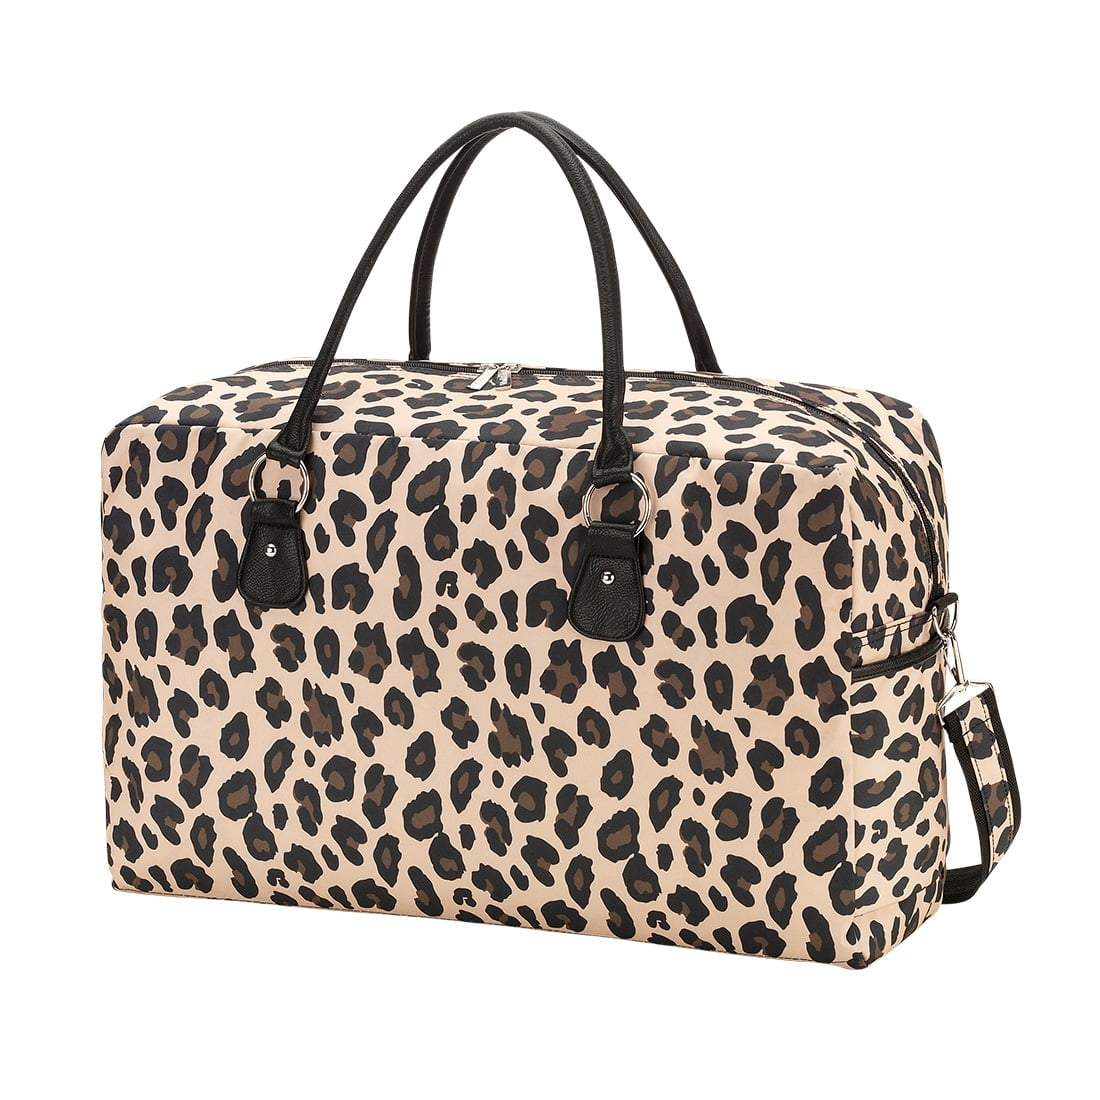 Wild Side Travel Bag